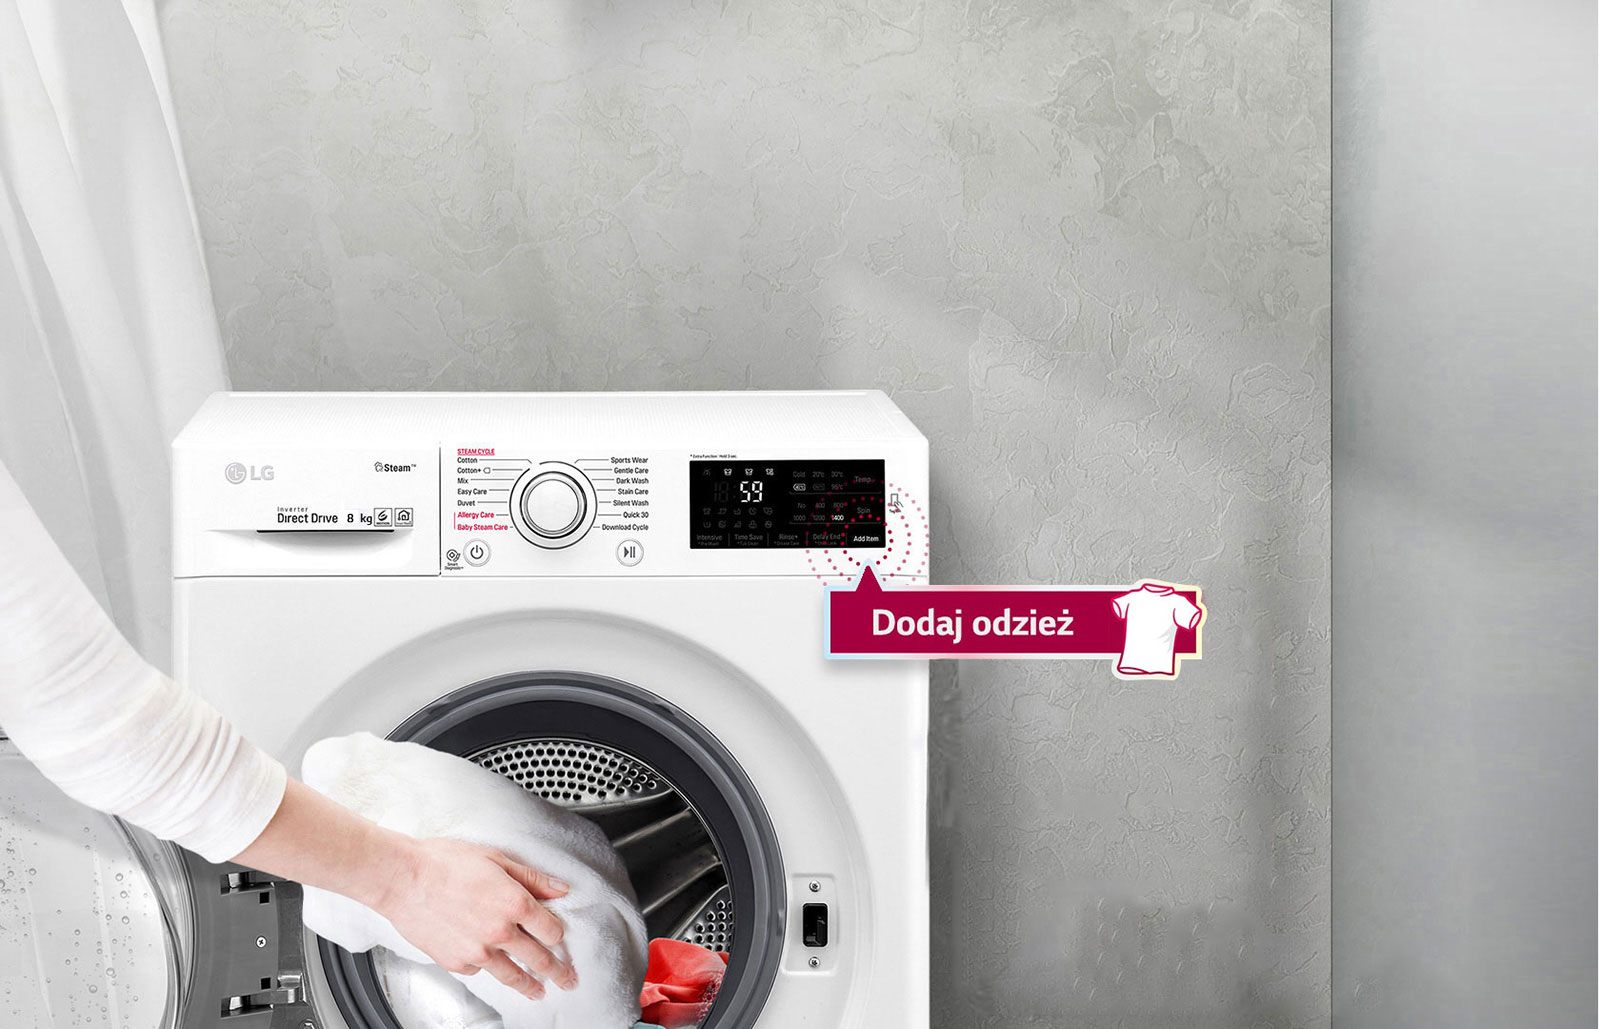 lg-pralka-f4j7ty1w-add-wash.jpg